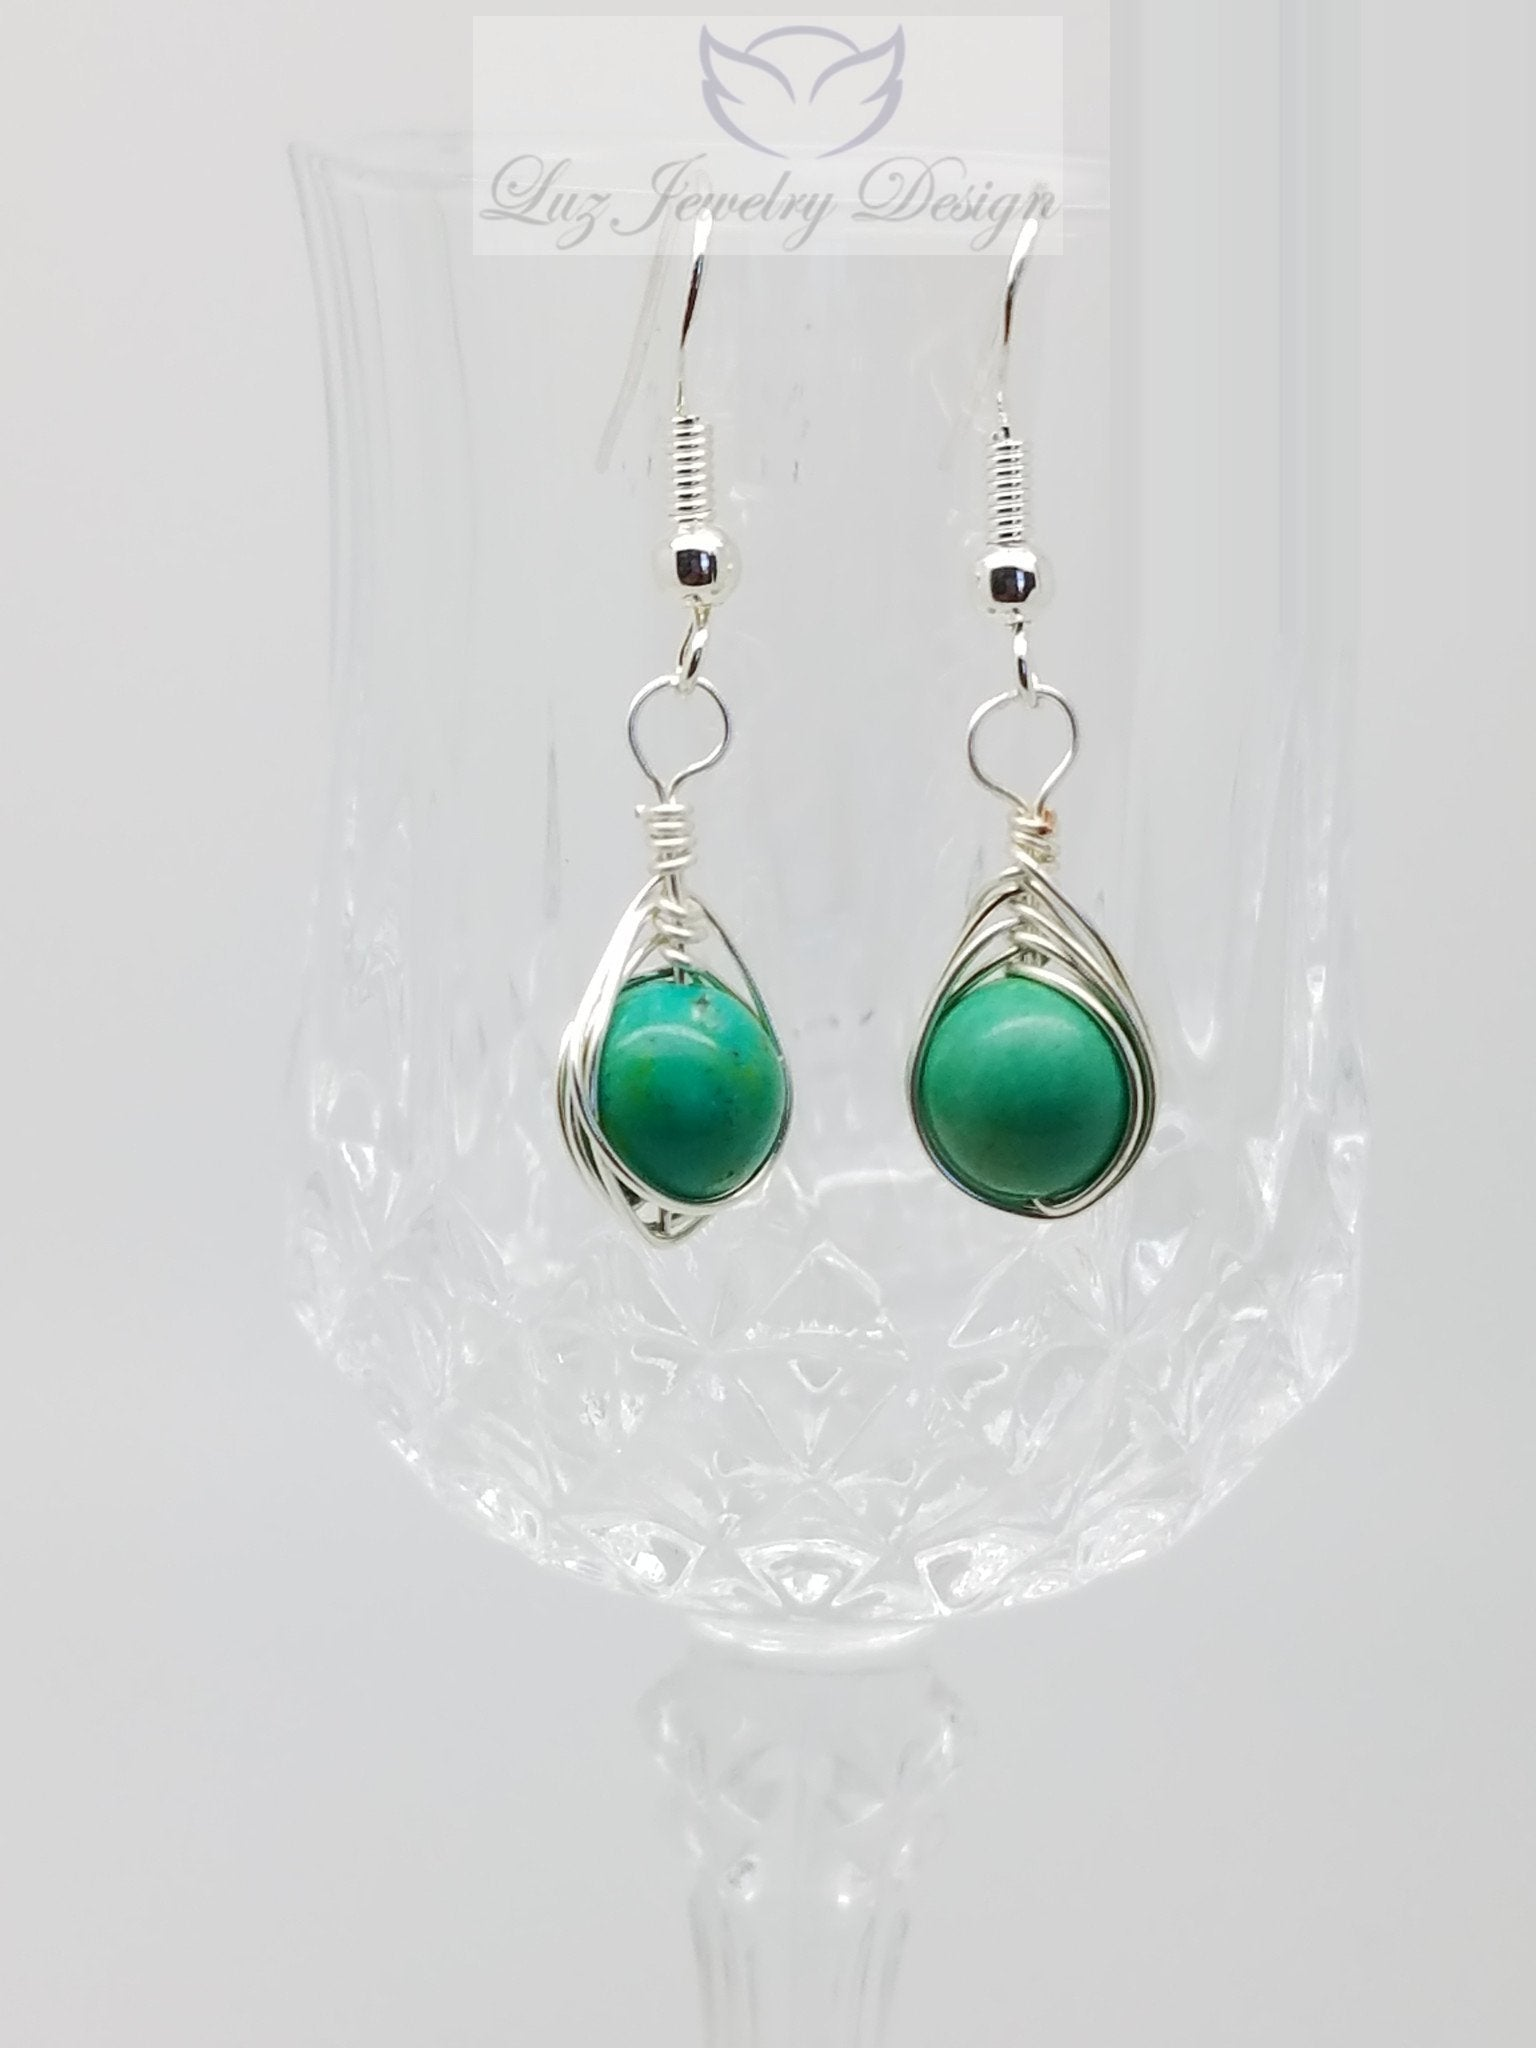 Turquoise wire wrap earrings - Luzjewelrydesign   - 1